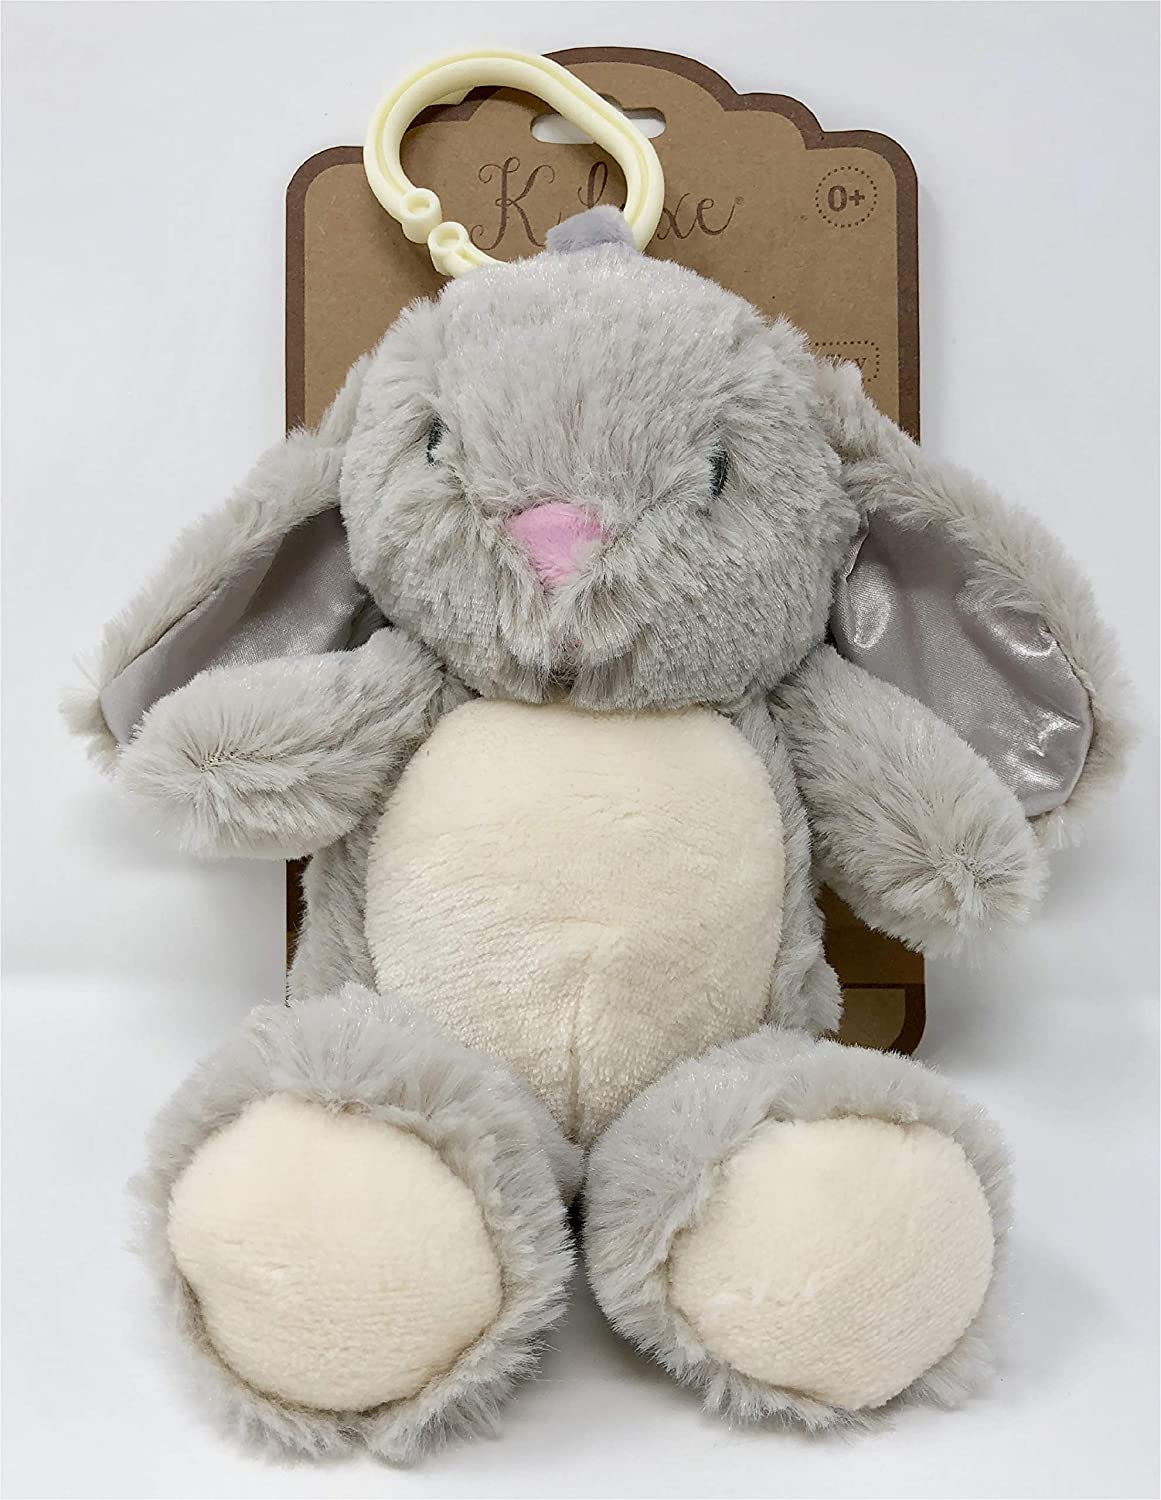 Clip on Pram Infant//Baby Toy with Rattle Kelly Toy Soft Plush Bunny K Luxe This Cuddly Bunny is The Perfect Companion for Your Little one on The go with The Attached Clip and Fun Rattle Sound